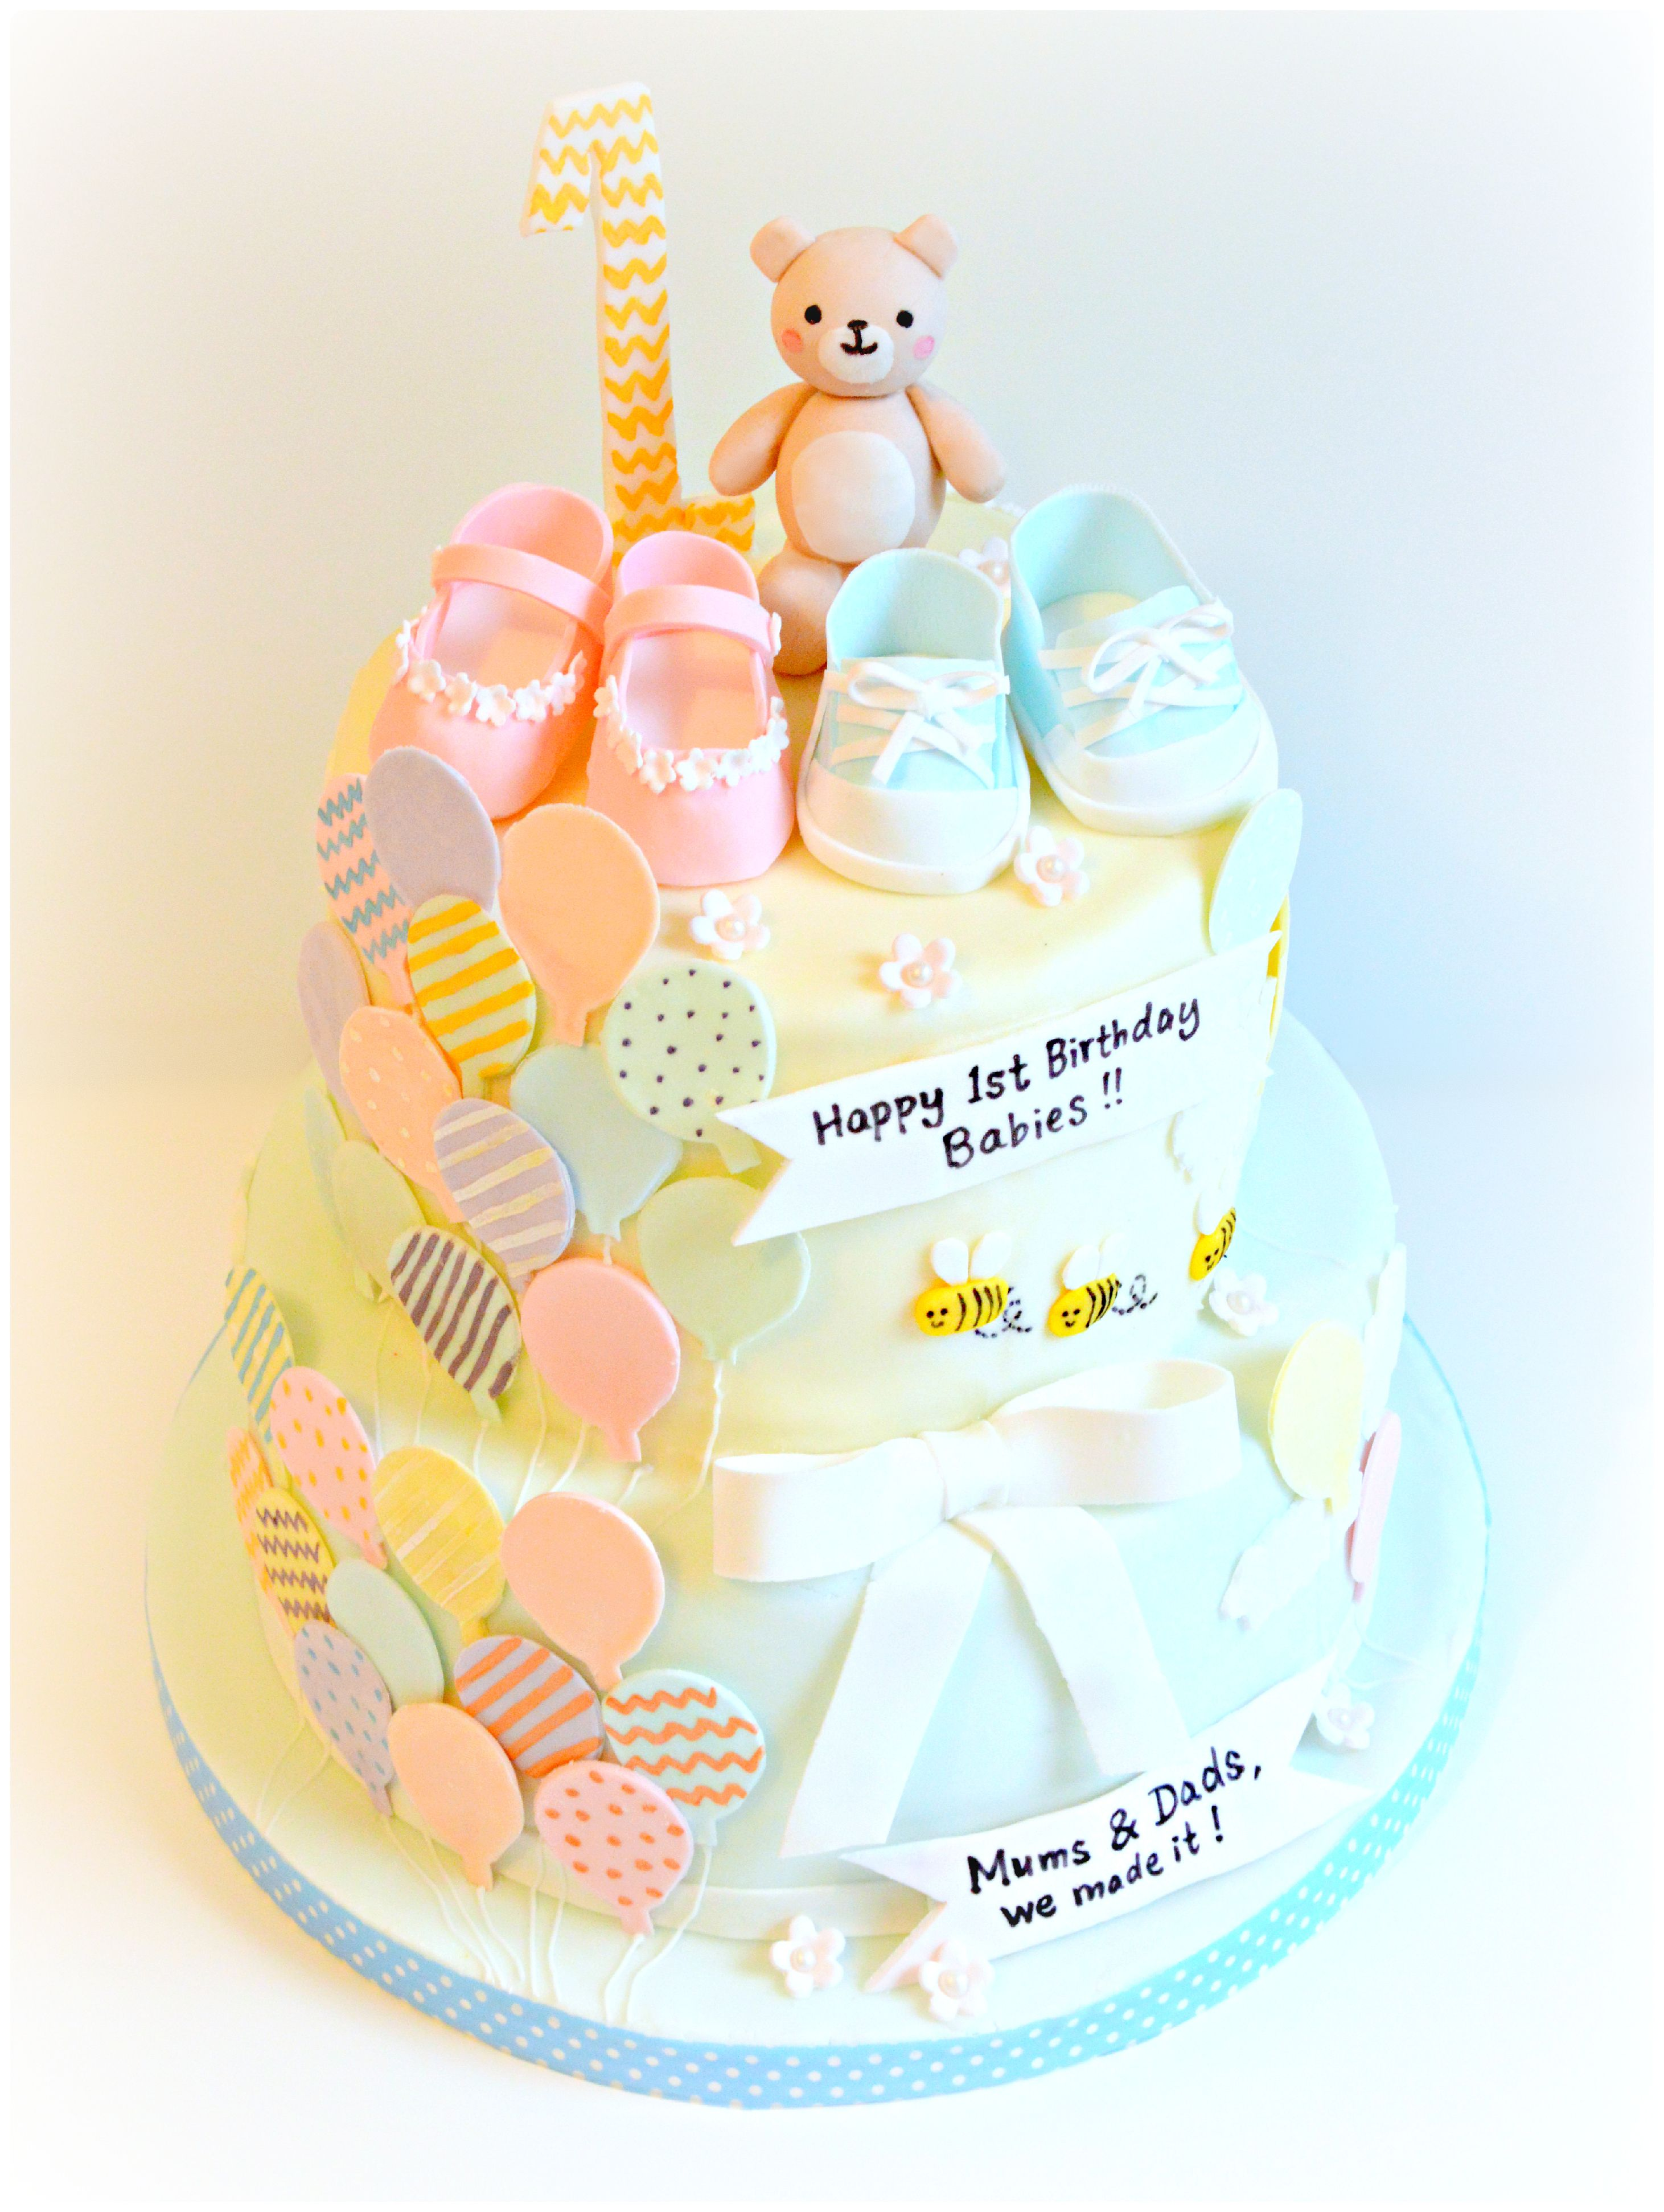 Baby Boys And Girls One Year Old Birthday Cake With Baby Shoes And